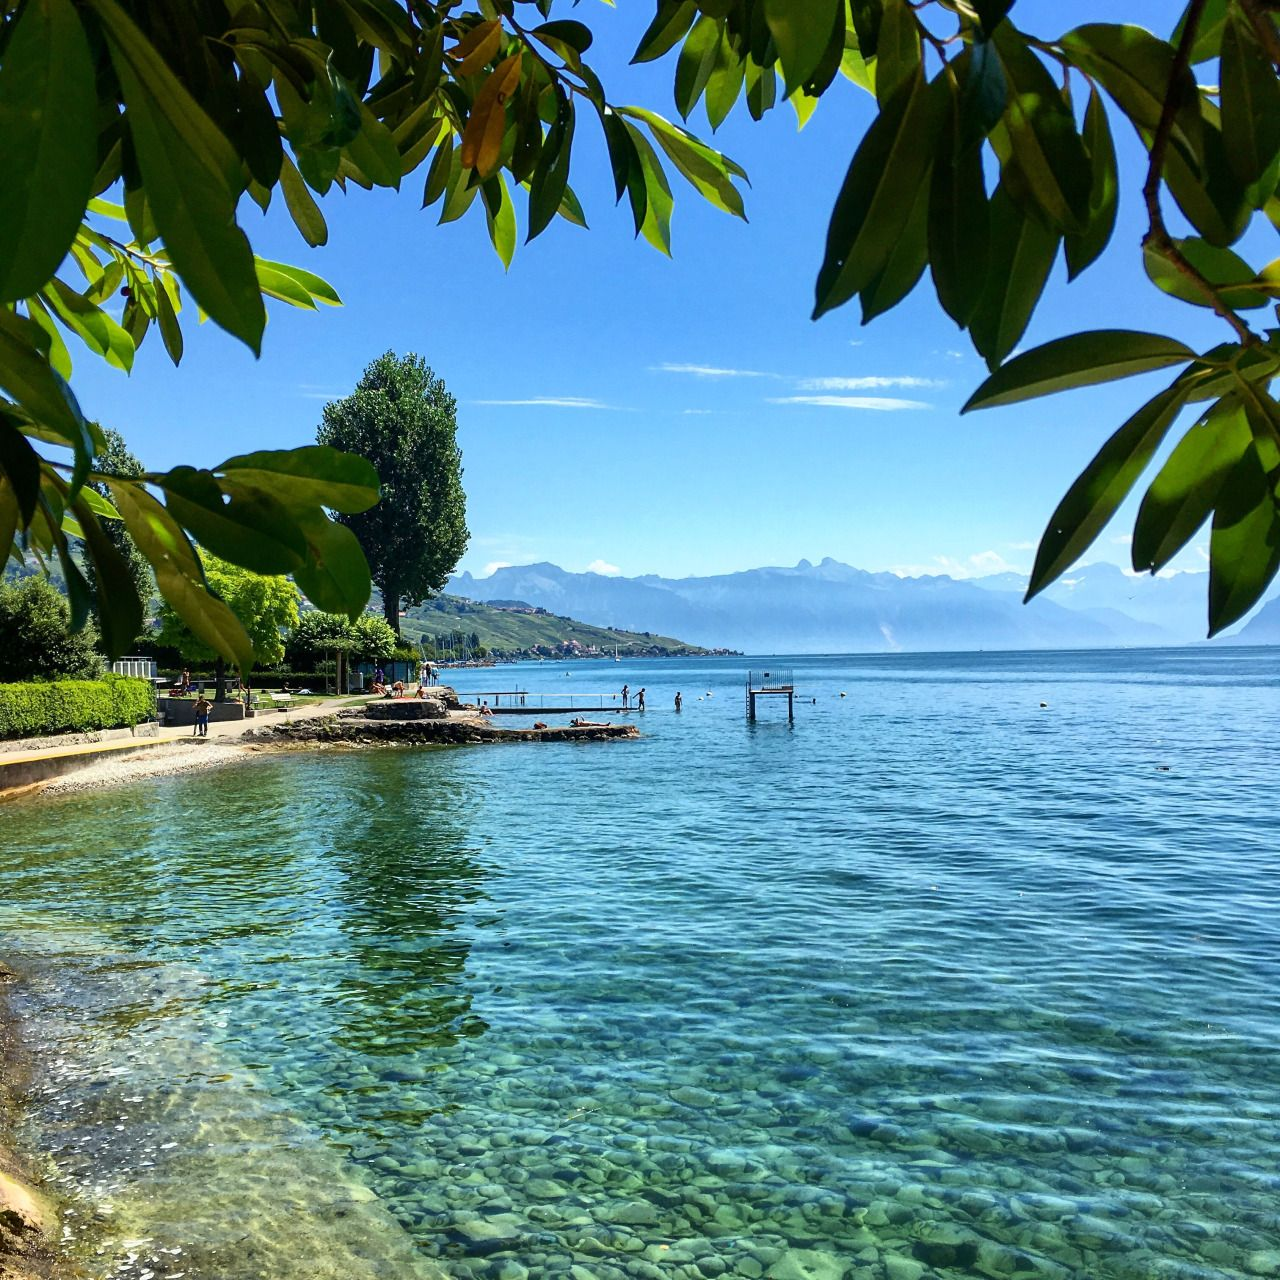 Best Places To Travel Europe April: Southernclass: €�Lake Geneva